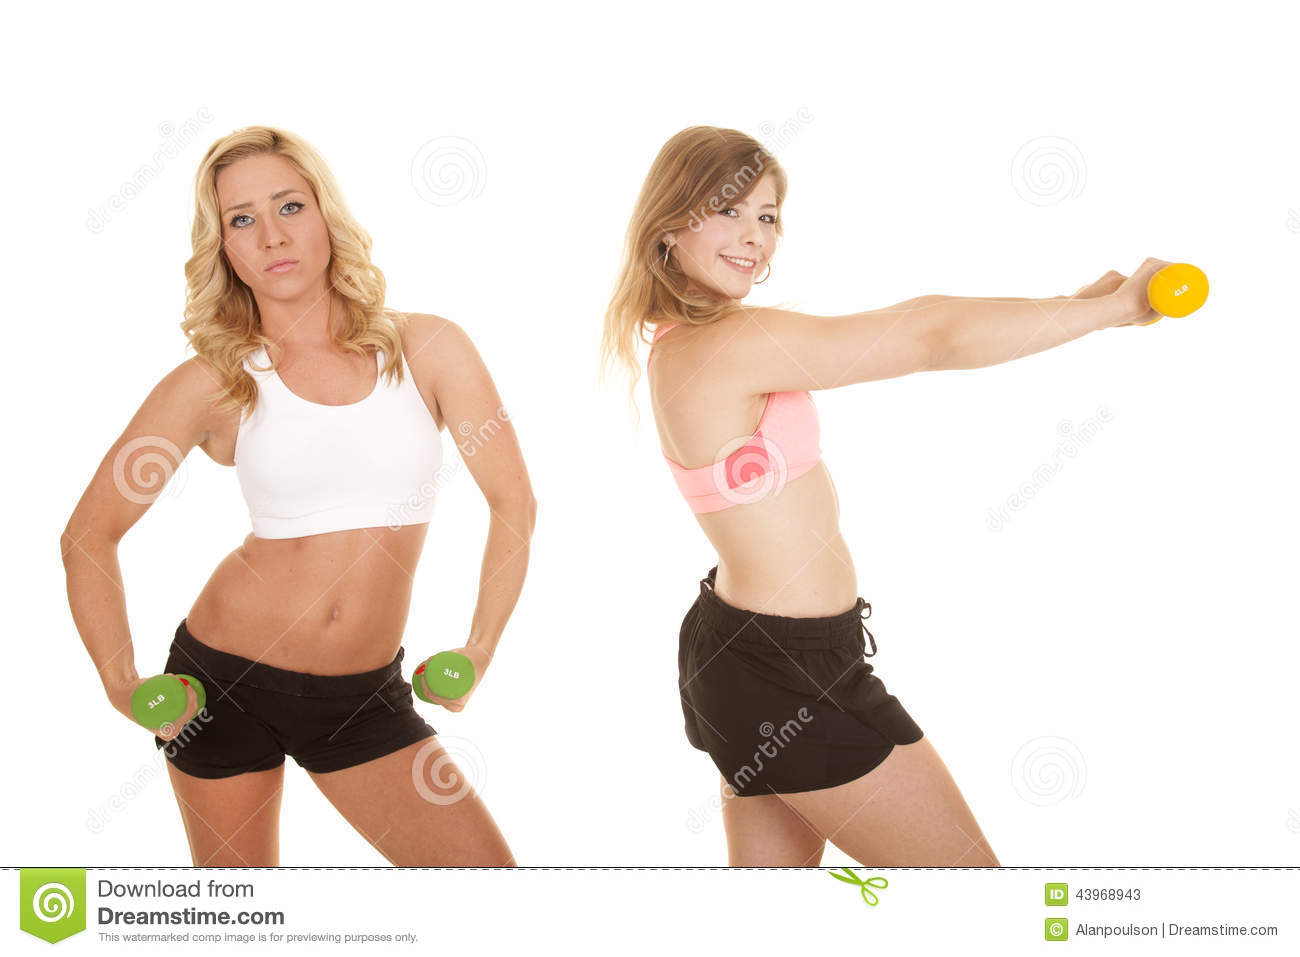 Two Girls Sports Bras Weights Serious Stock Photo - Image: 43968943